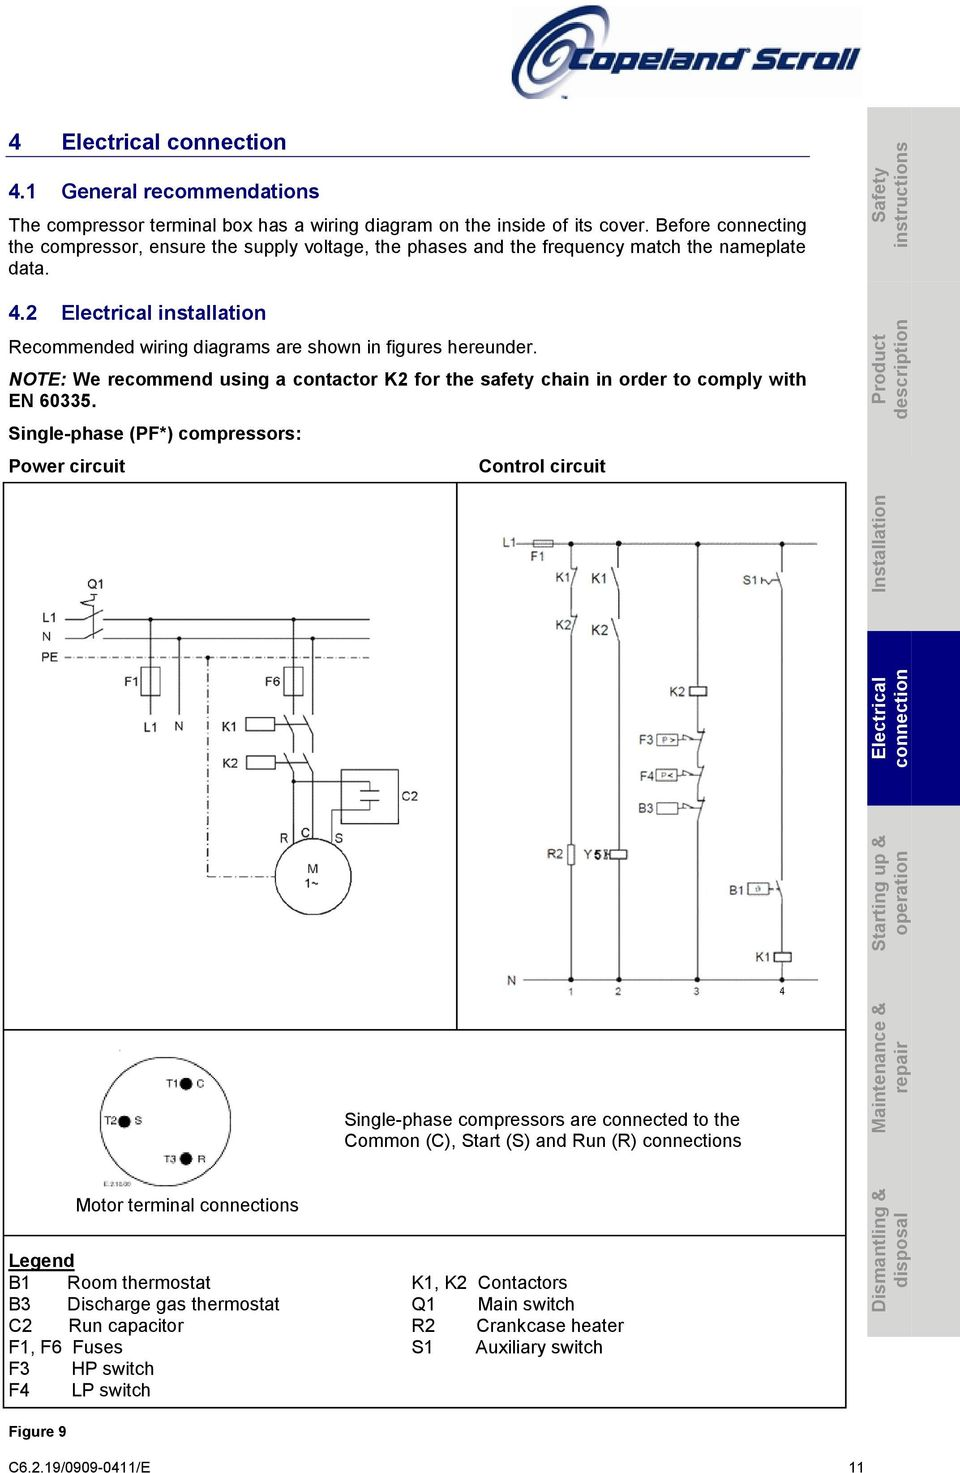 Copeland Scroll Compressor Wiring Diagram from docplayer.net